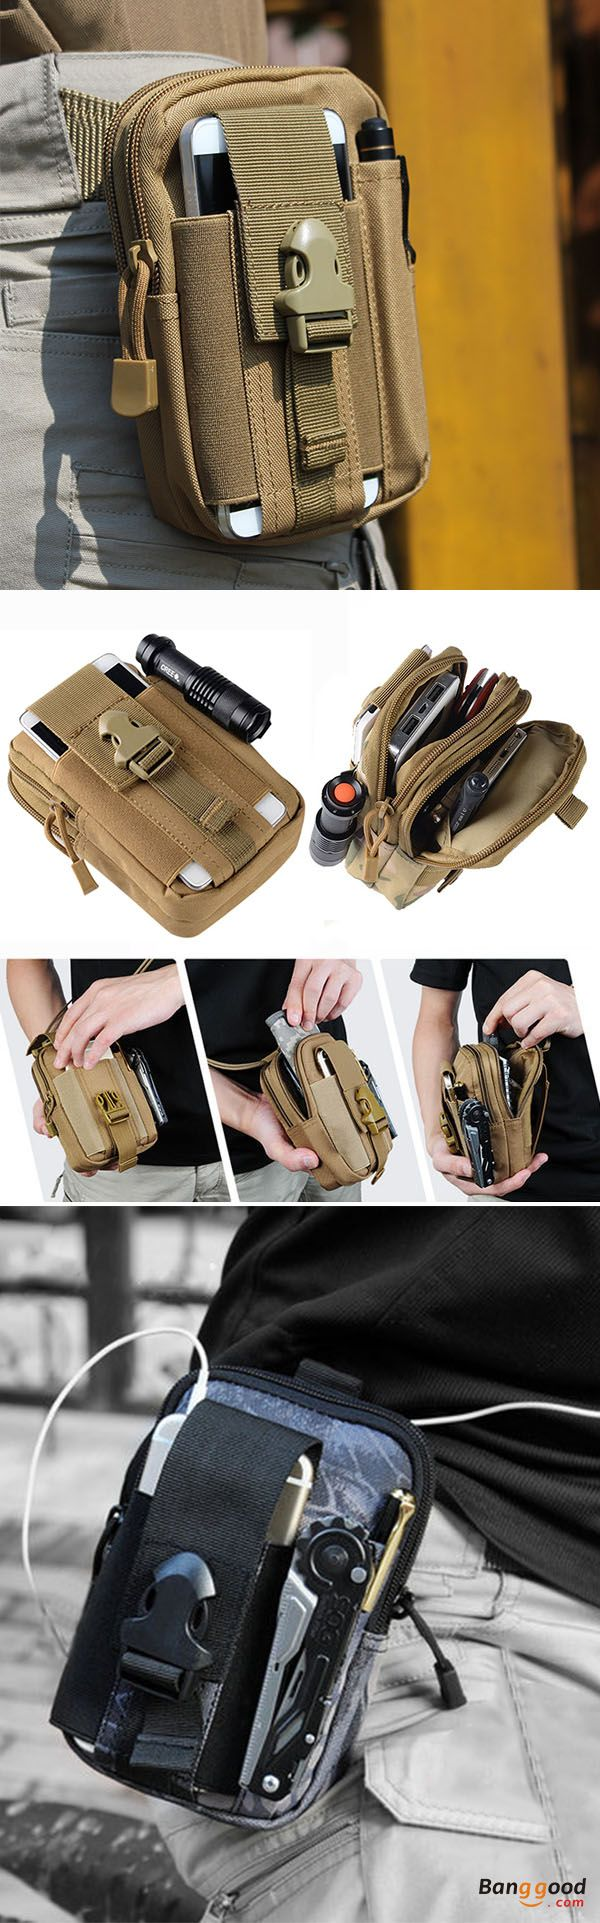 5.5/6 Inch Men Tactical Waist Bags Outdoor Sports Mobile Phone Case for iPhone SAMSUNG. This Bag can fit in cellphone under 6inch(including 6 inch). Waterproof, durable and portable.Suitable for outdoor, travel and sports, such as camping, cycling, hiking, etc. 11 colors to choose, shop now!